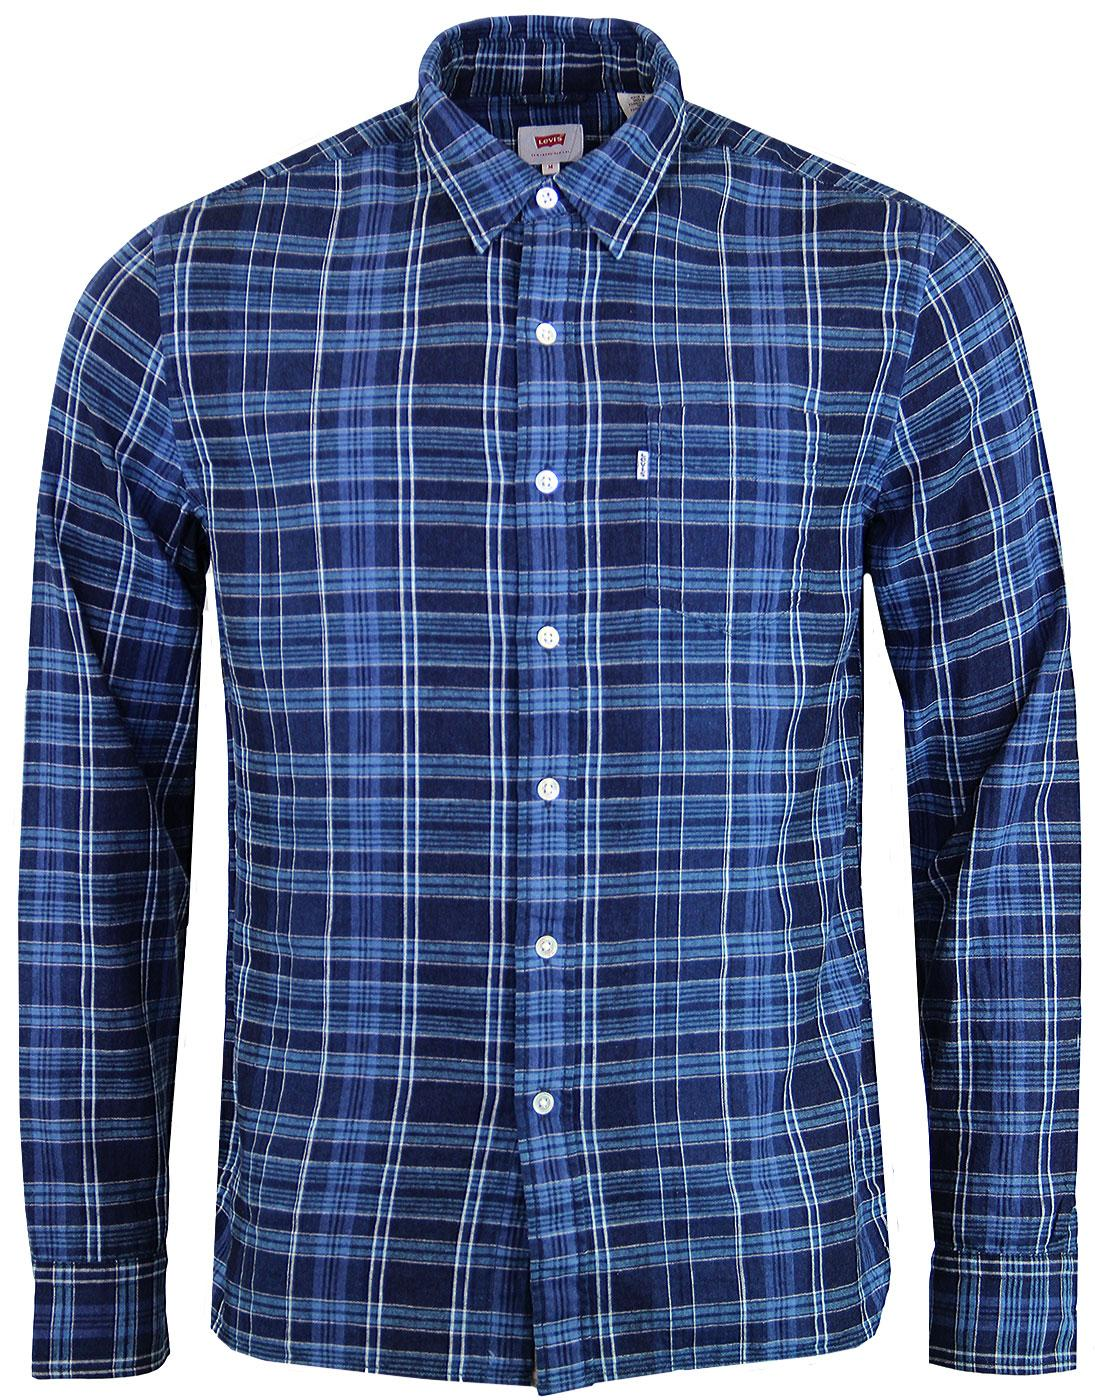 LEVI'S Sunset Pocket Indigo Dye Linen Check Shirt